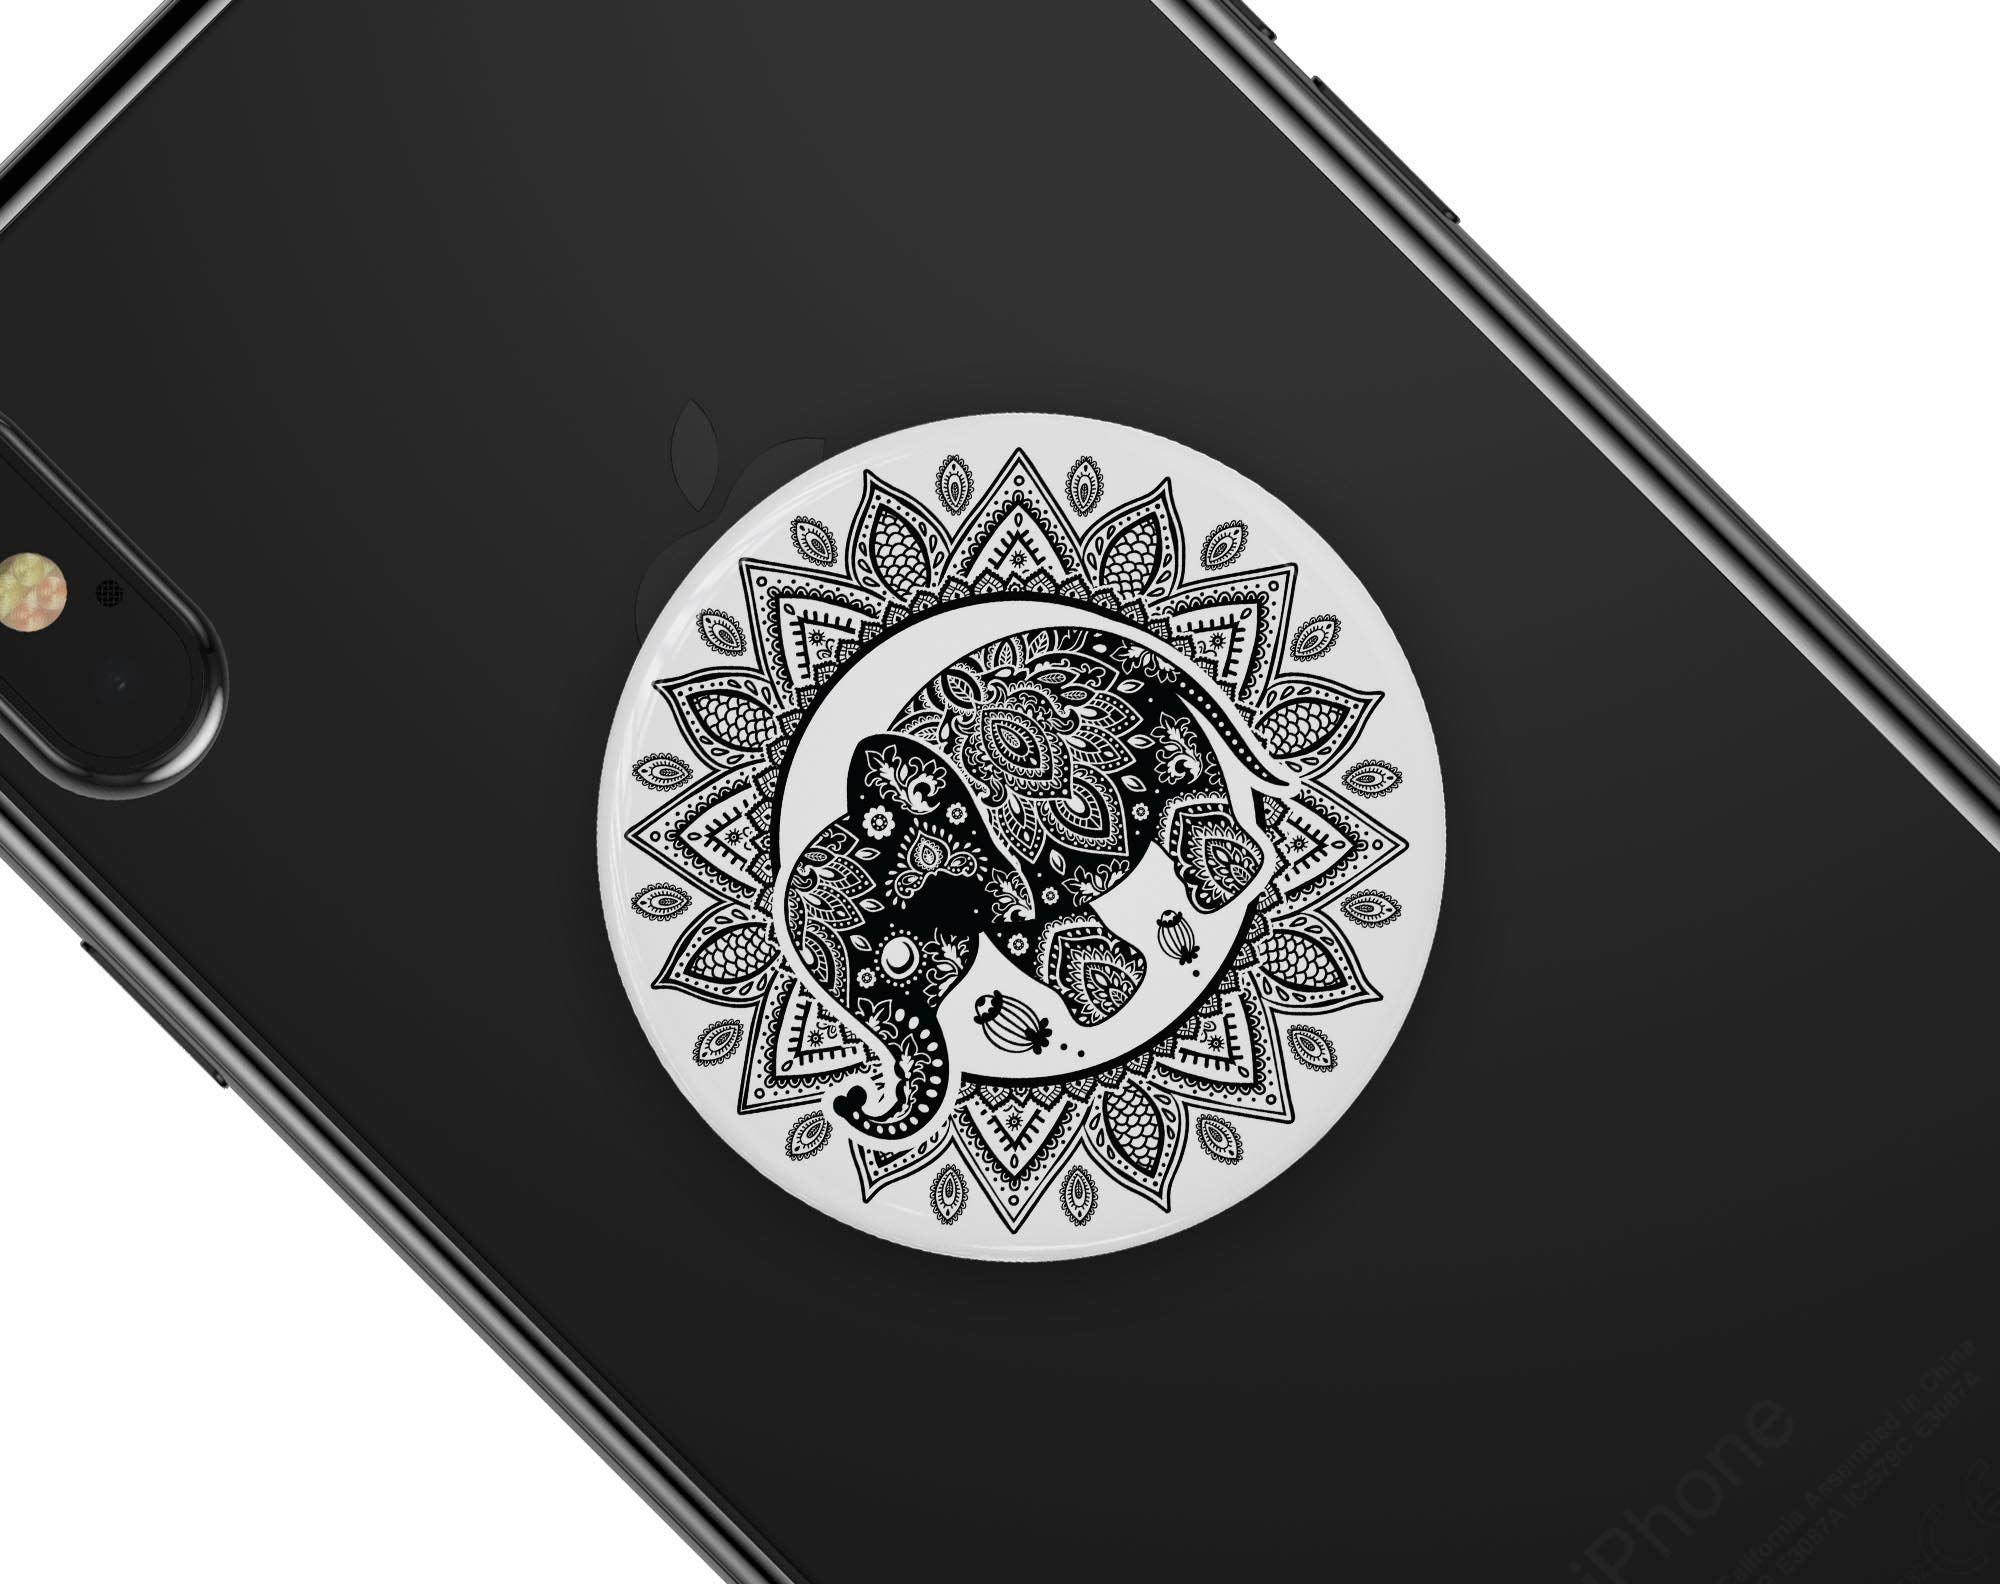 Indian Mandala Elephant - DesignSkinz Premium Decal Sticker Skin-Kit for PopSockets Smartphone Extendable Grip & Stand by iiRov (Image #4)